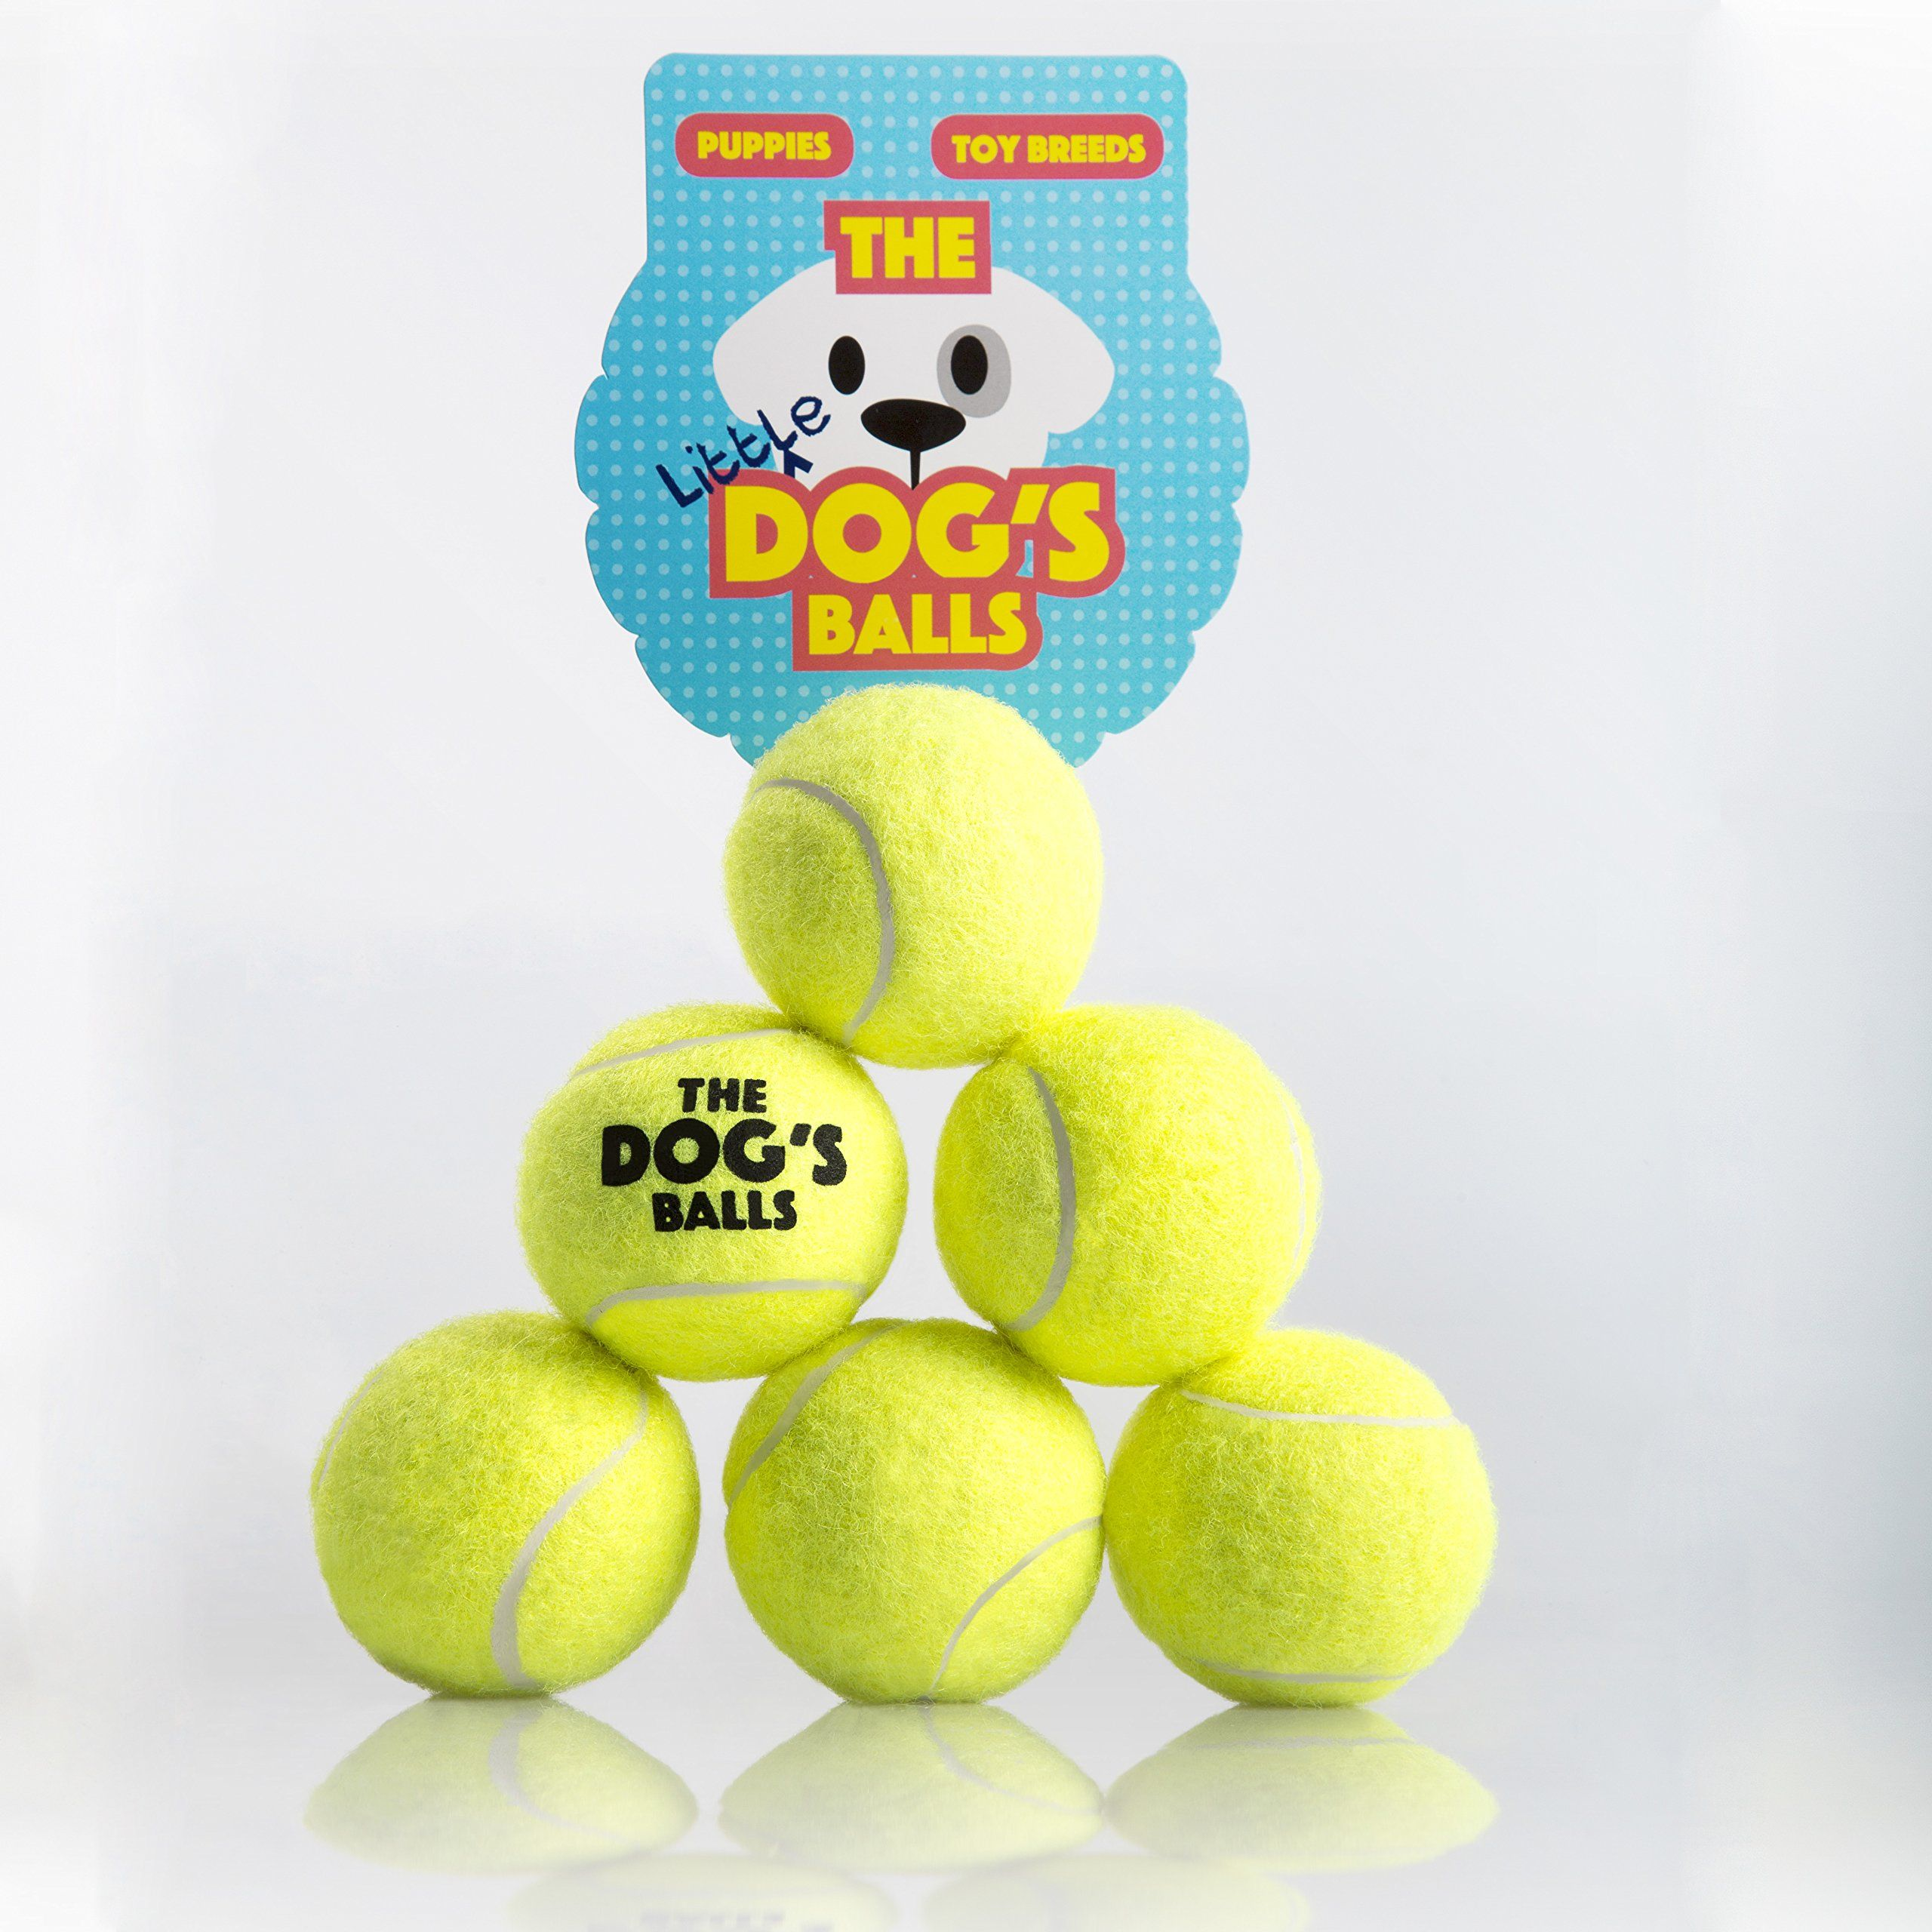 The Little Dogs Balls 6 Small Yellow Tennis Balls For Dogs Premium Mini Dog Toy For Puppies And Small Dogs Puppy Exercise Play T Dog Ball Toy Puppies Dog Toys